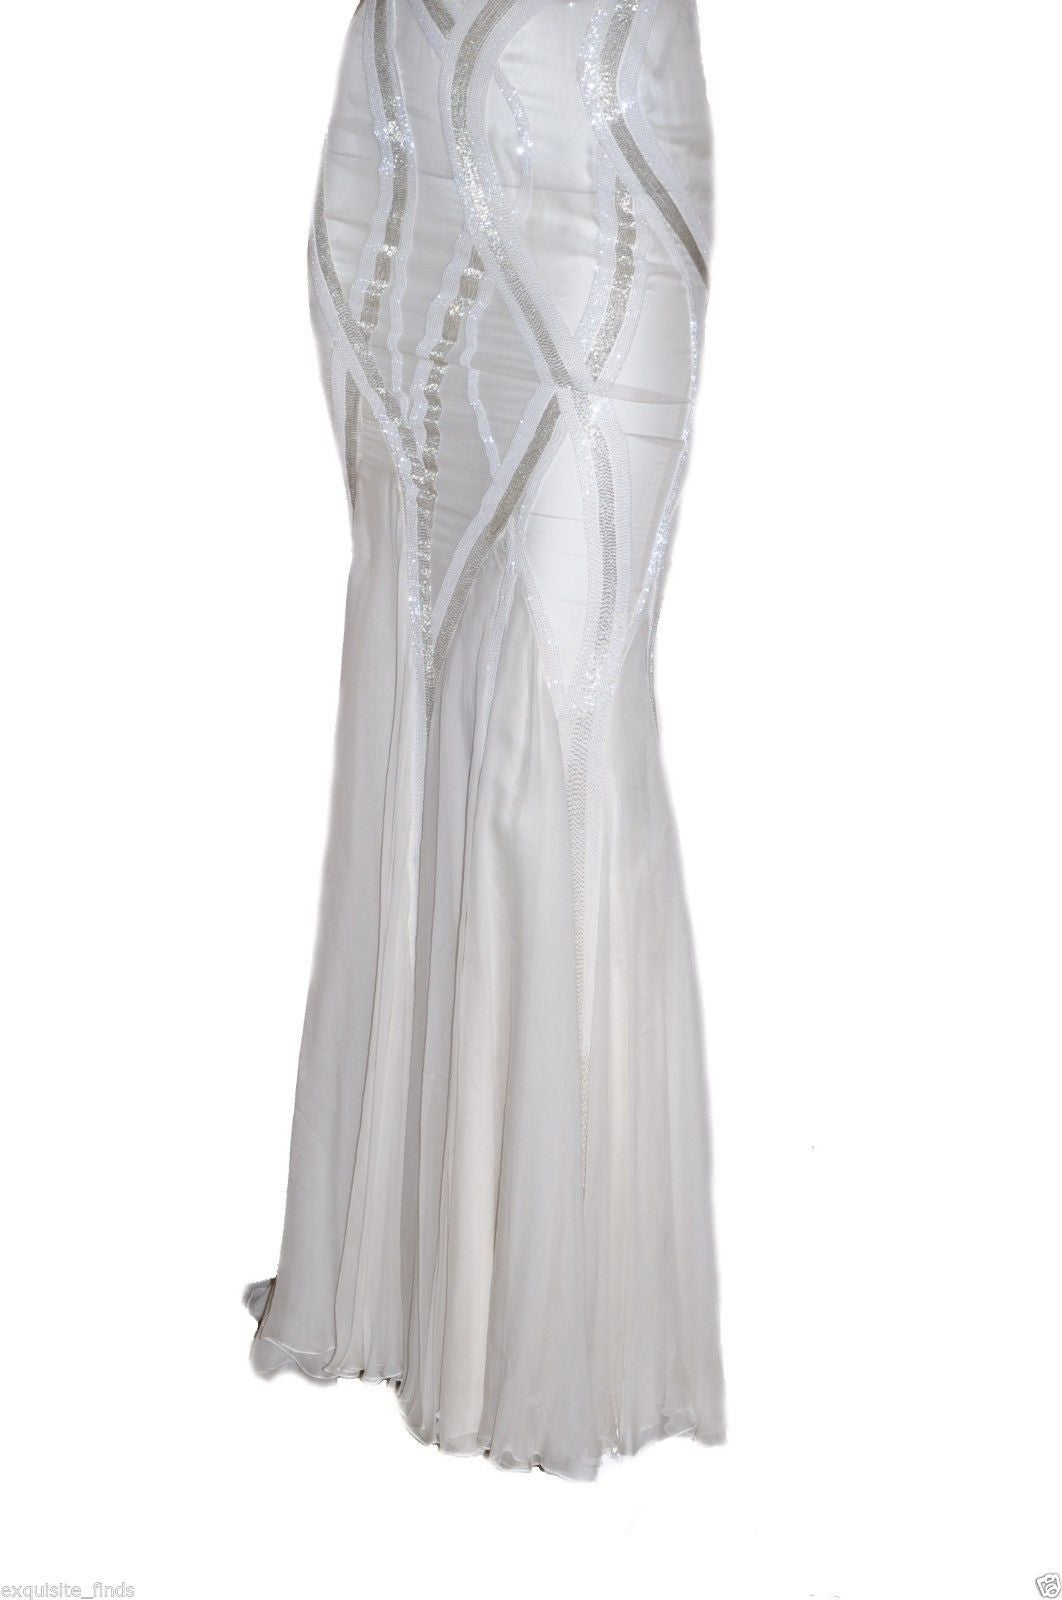 New VERSACE EMBELLISHED MERMAID CHIFFON GOWN 4